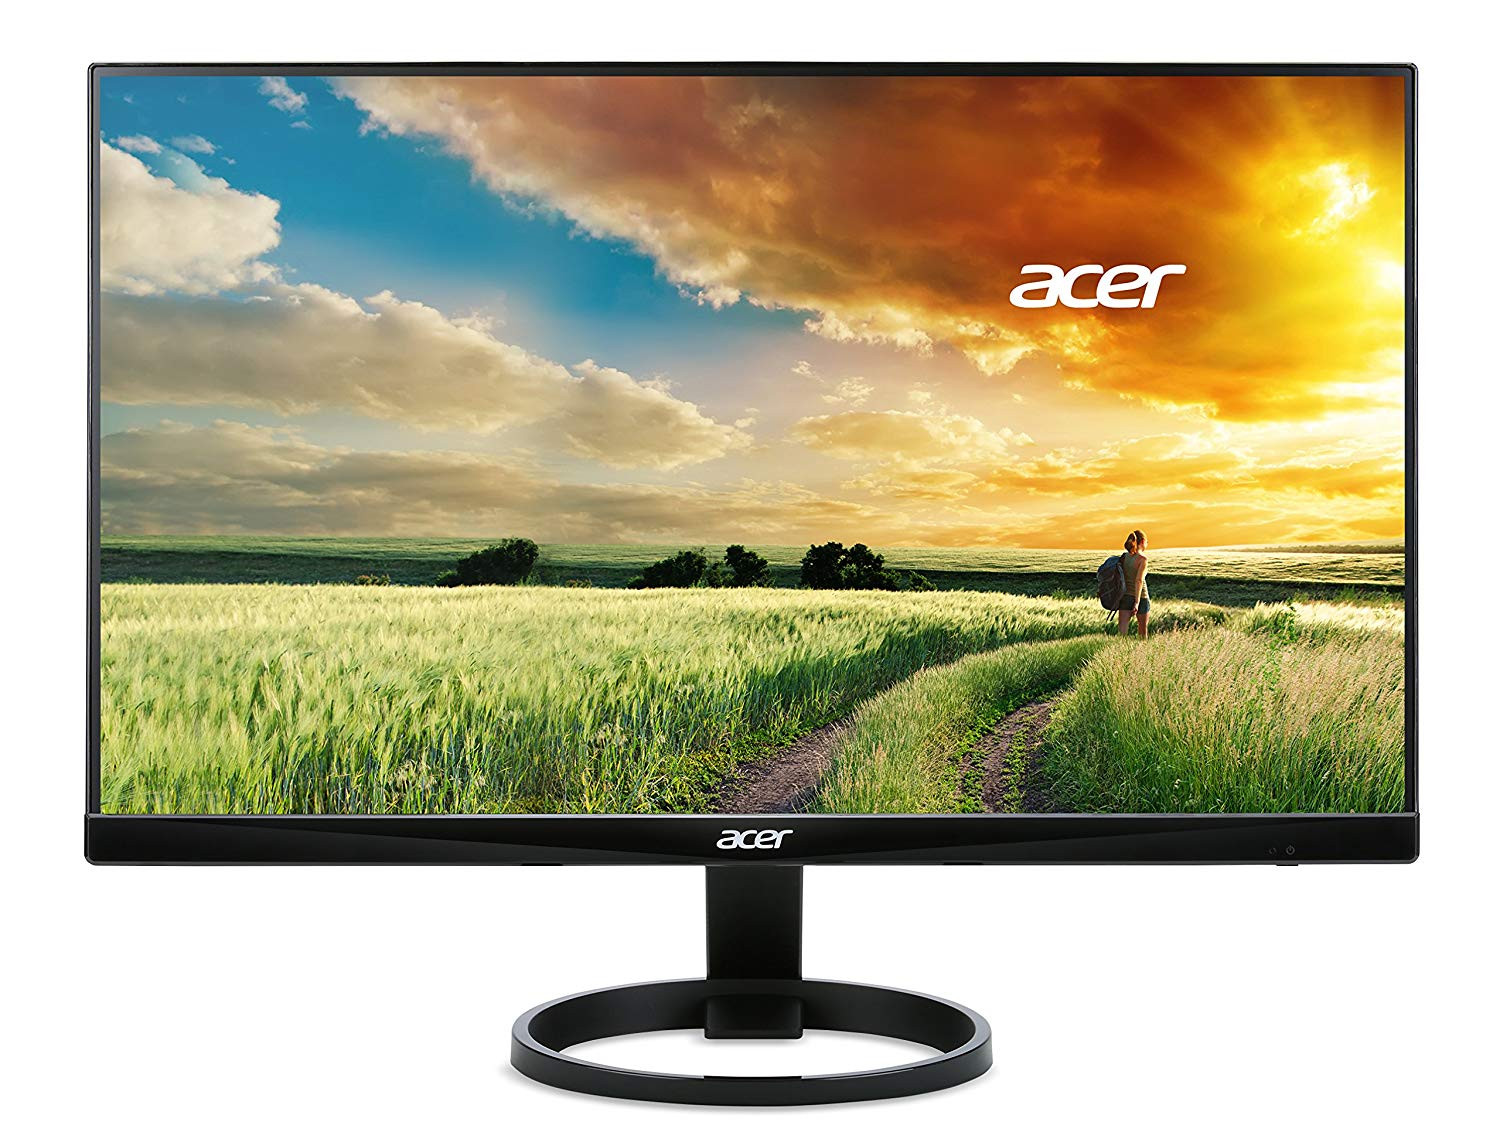 Acer 23.8-Inch Widescreen Monitor